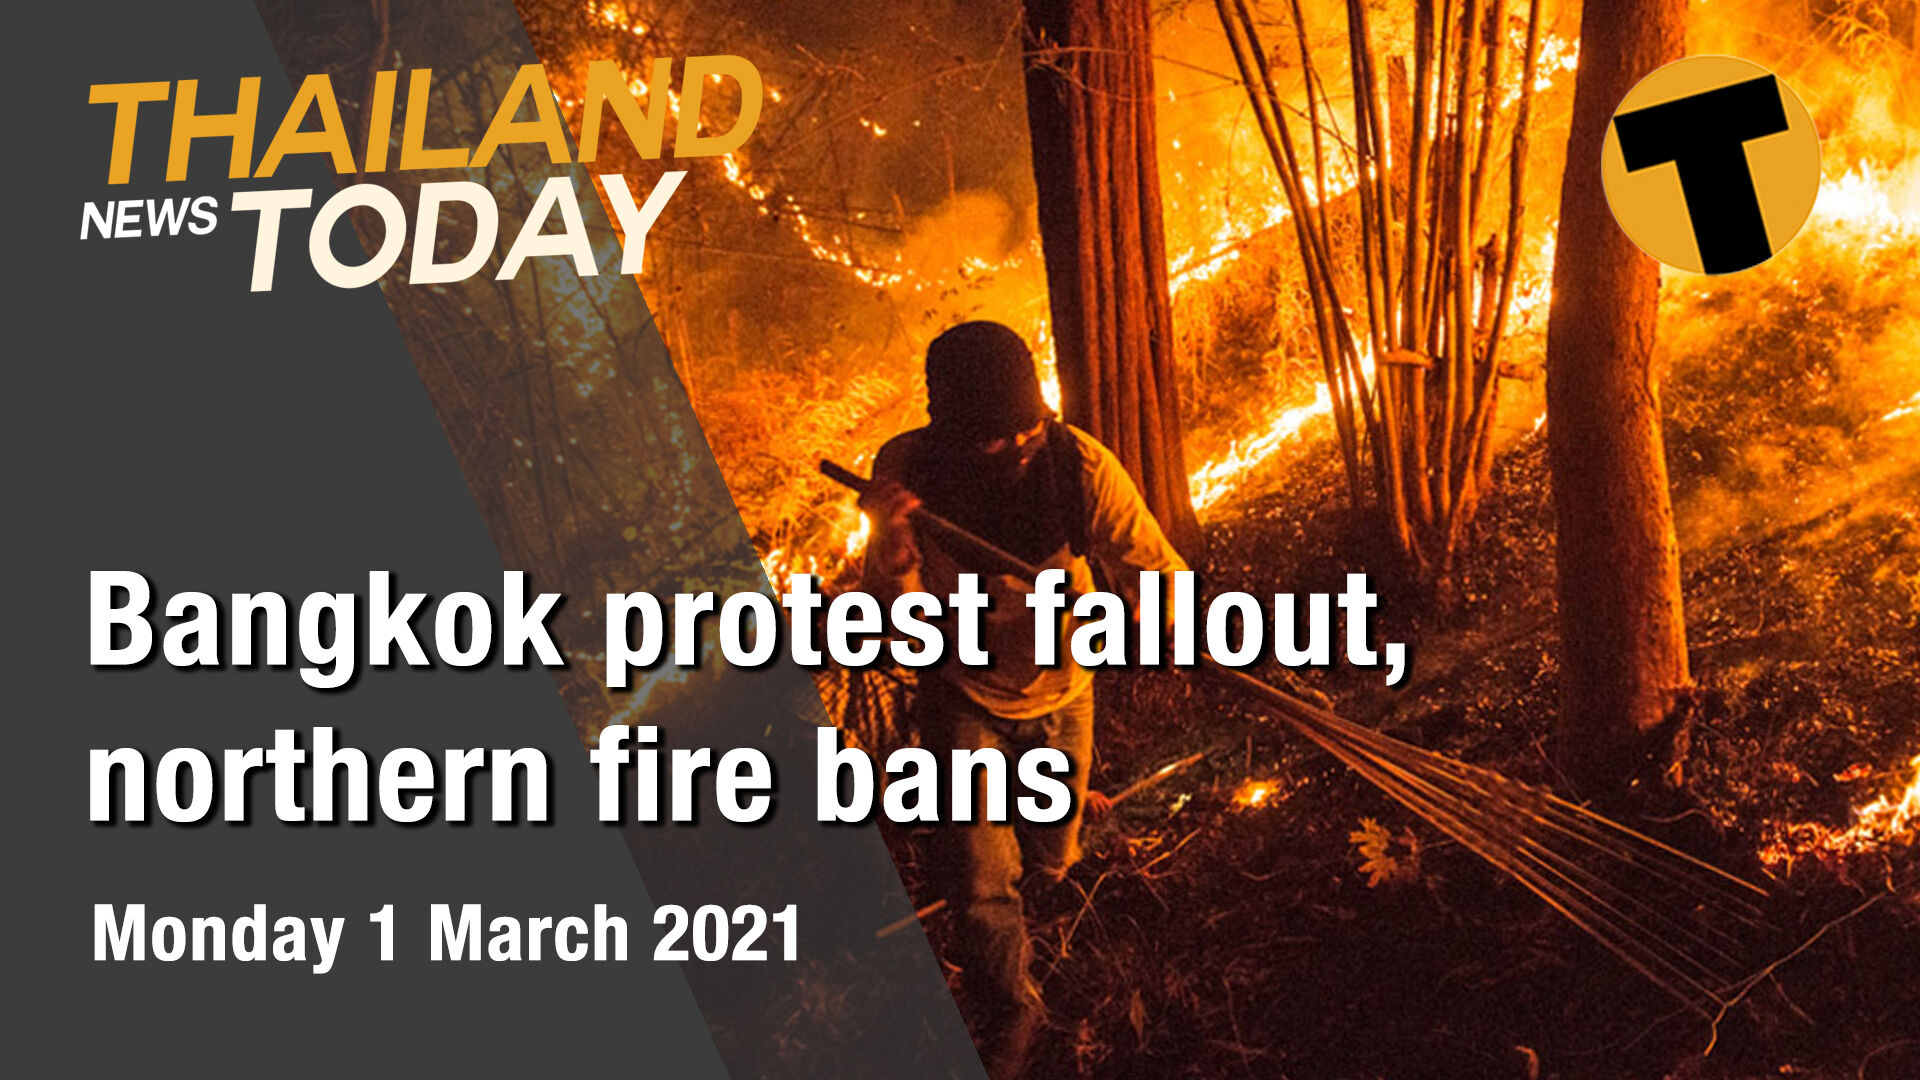 Thailand News Today | Bangkok protest fallout, northern fire bans | March 1 | The Thaiger